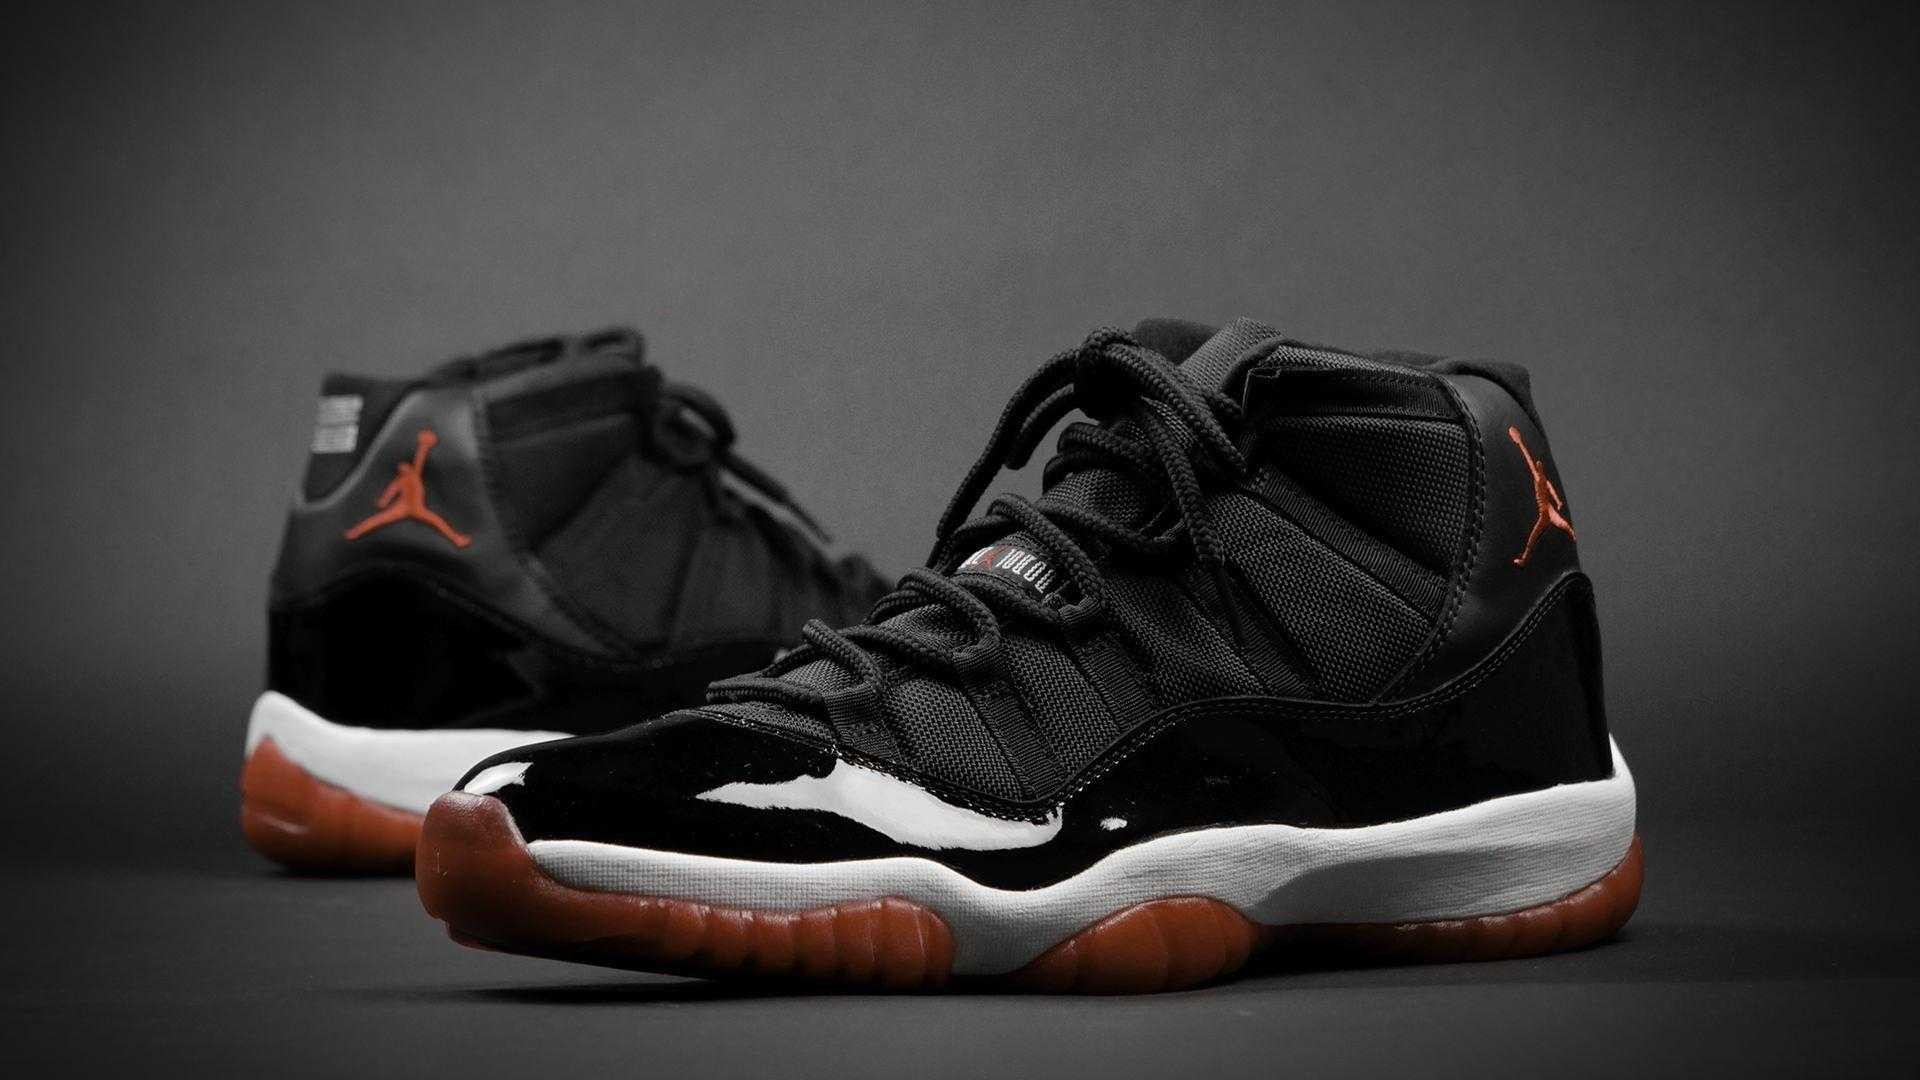 1920x1080 Air Jordan Shoes Wallpapers Wallpaper Trends Including Picture